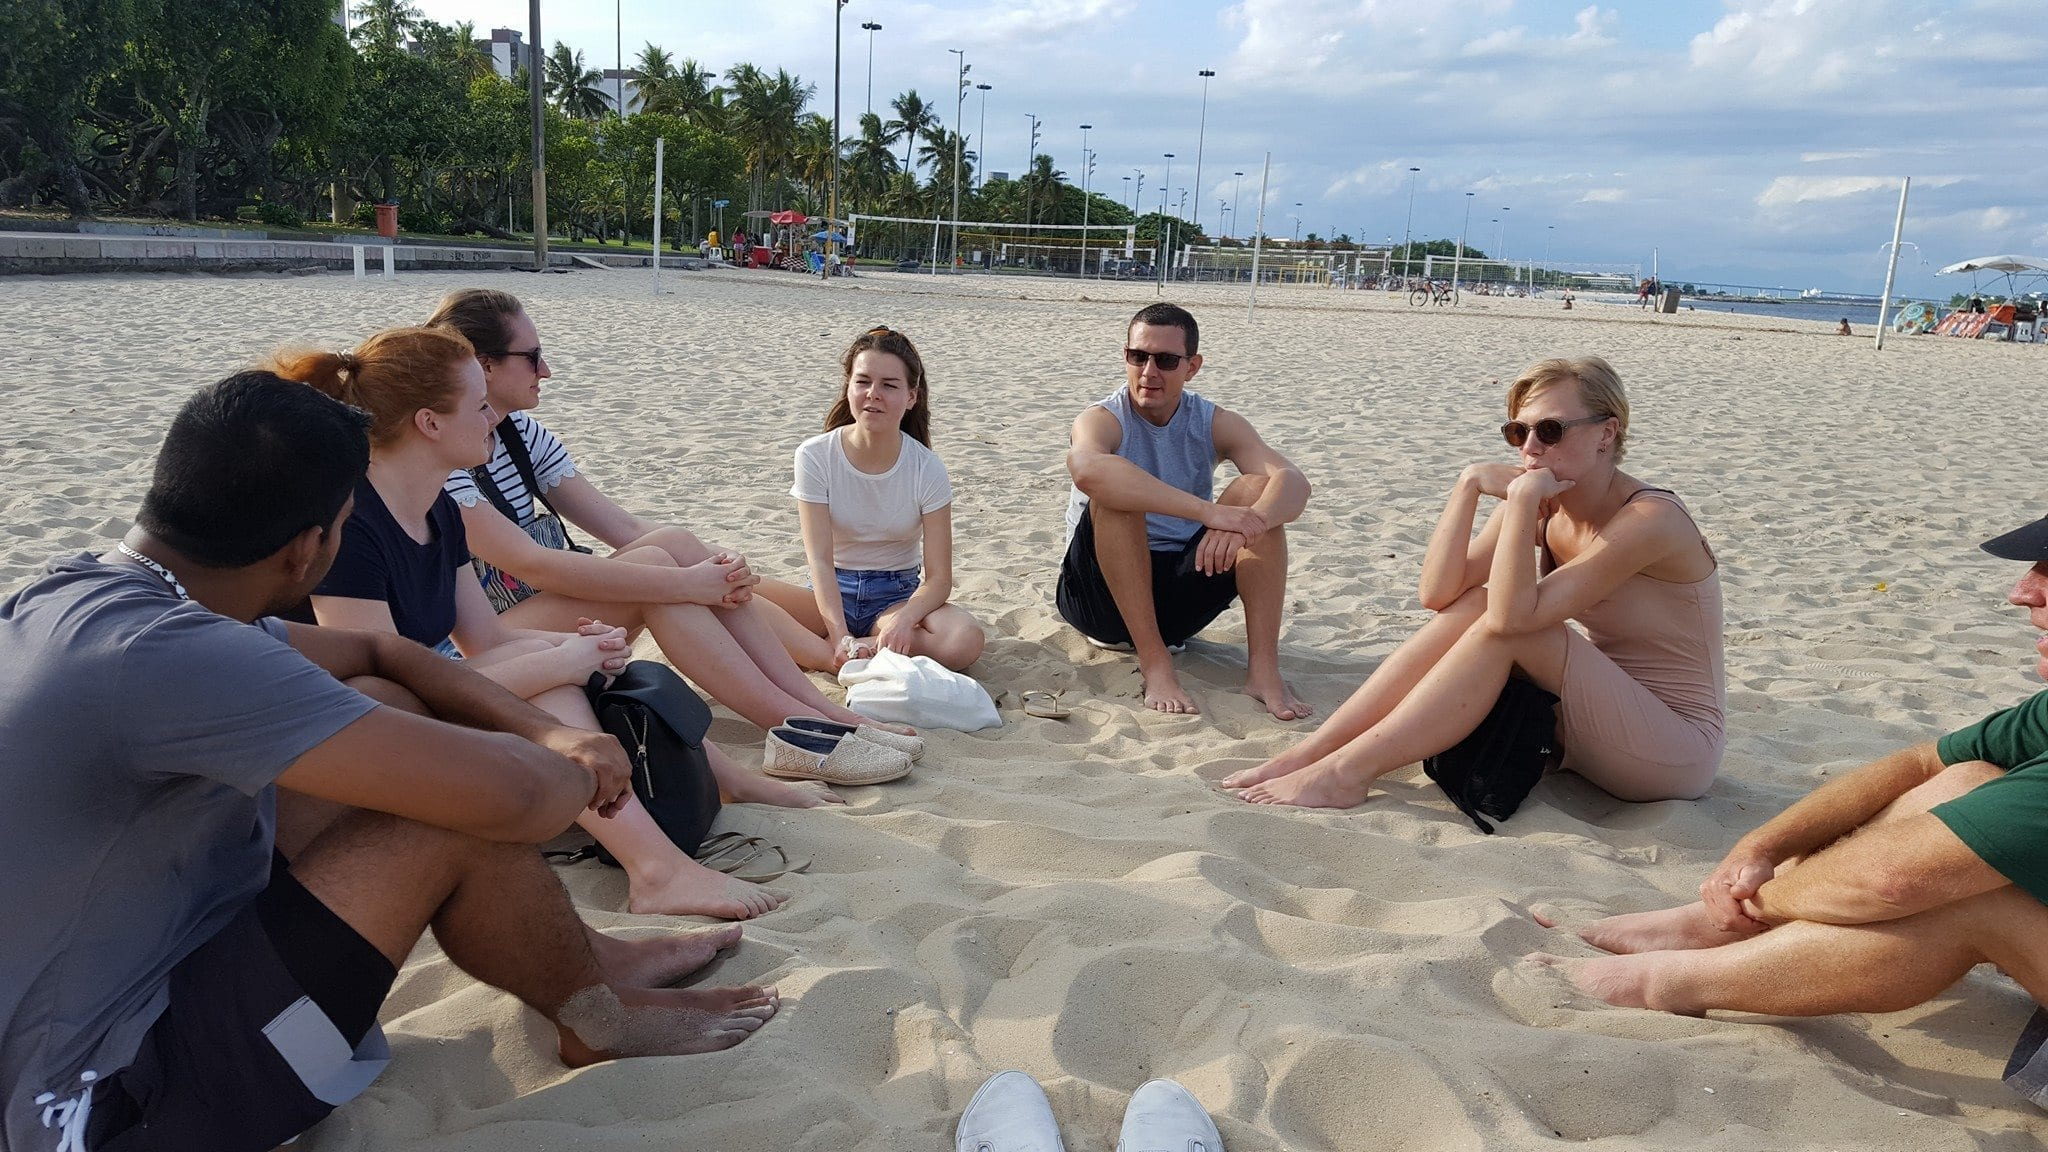 Enjoying the sun and playing a game at Flamengo Beach.